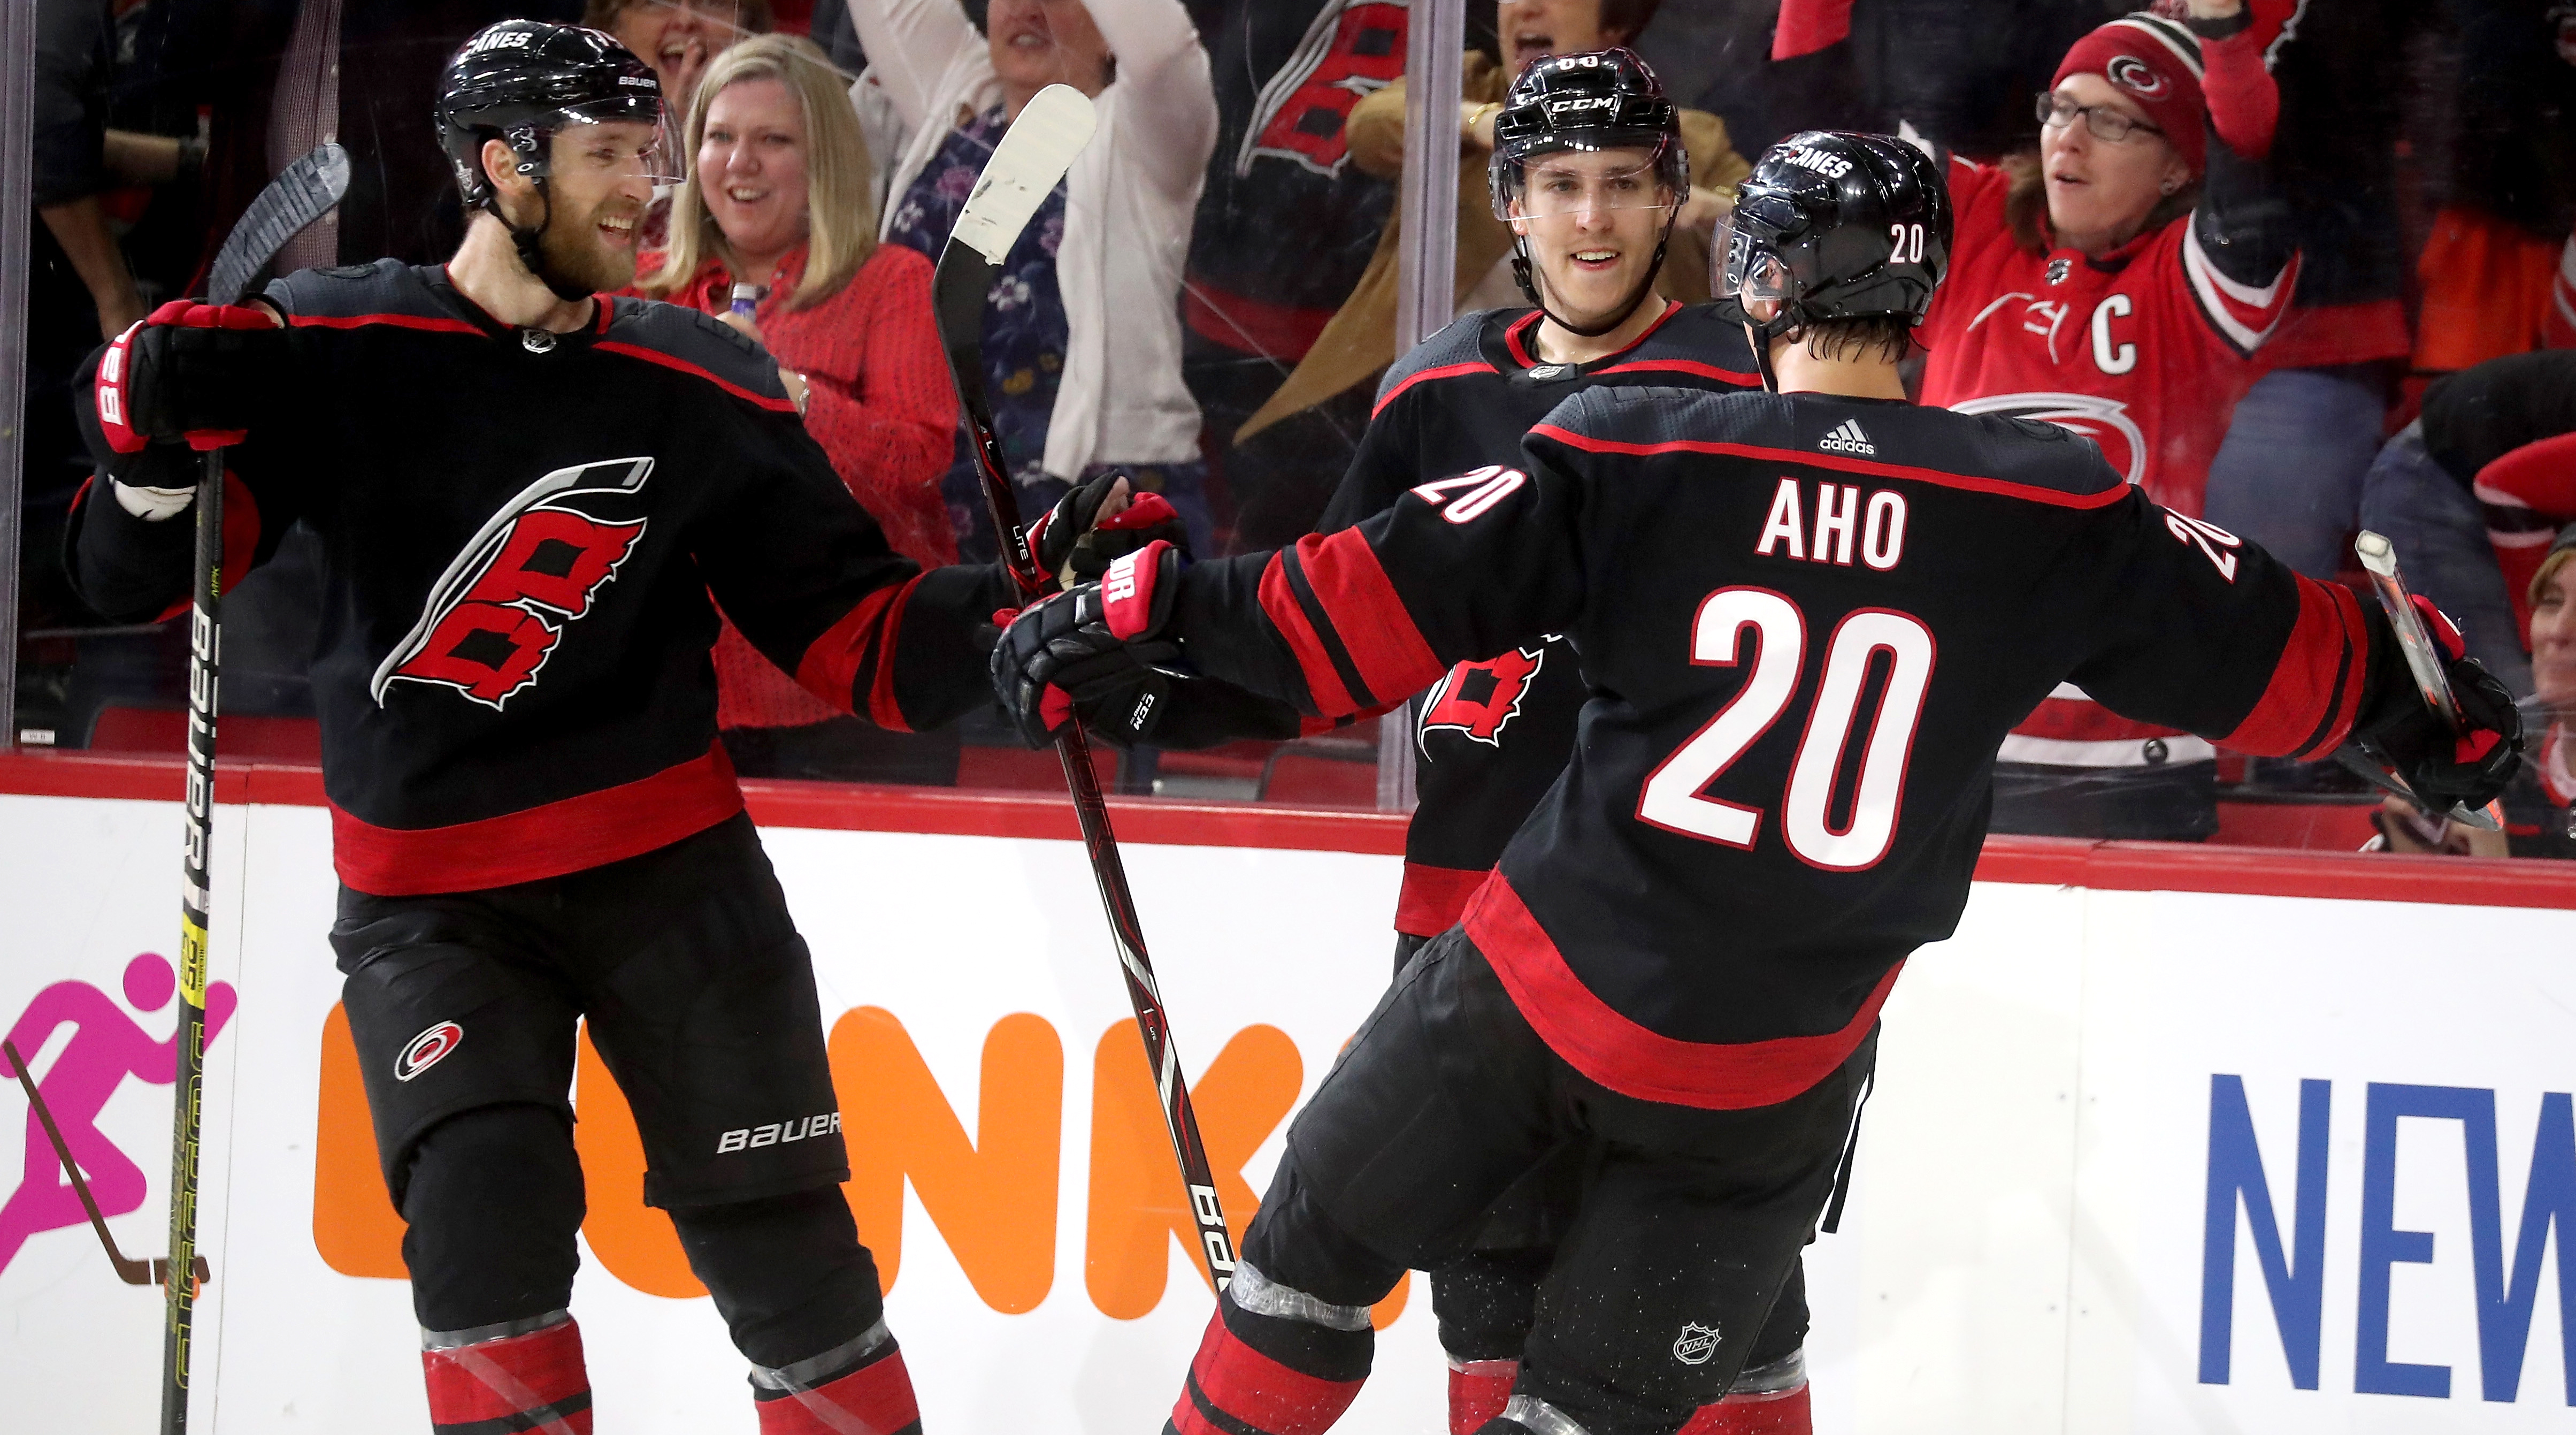 Playoff Roundup: Hurricanes Even Up, Blues Pull Off Stunning Comeback, Sharks Avoid Elimination